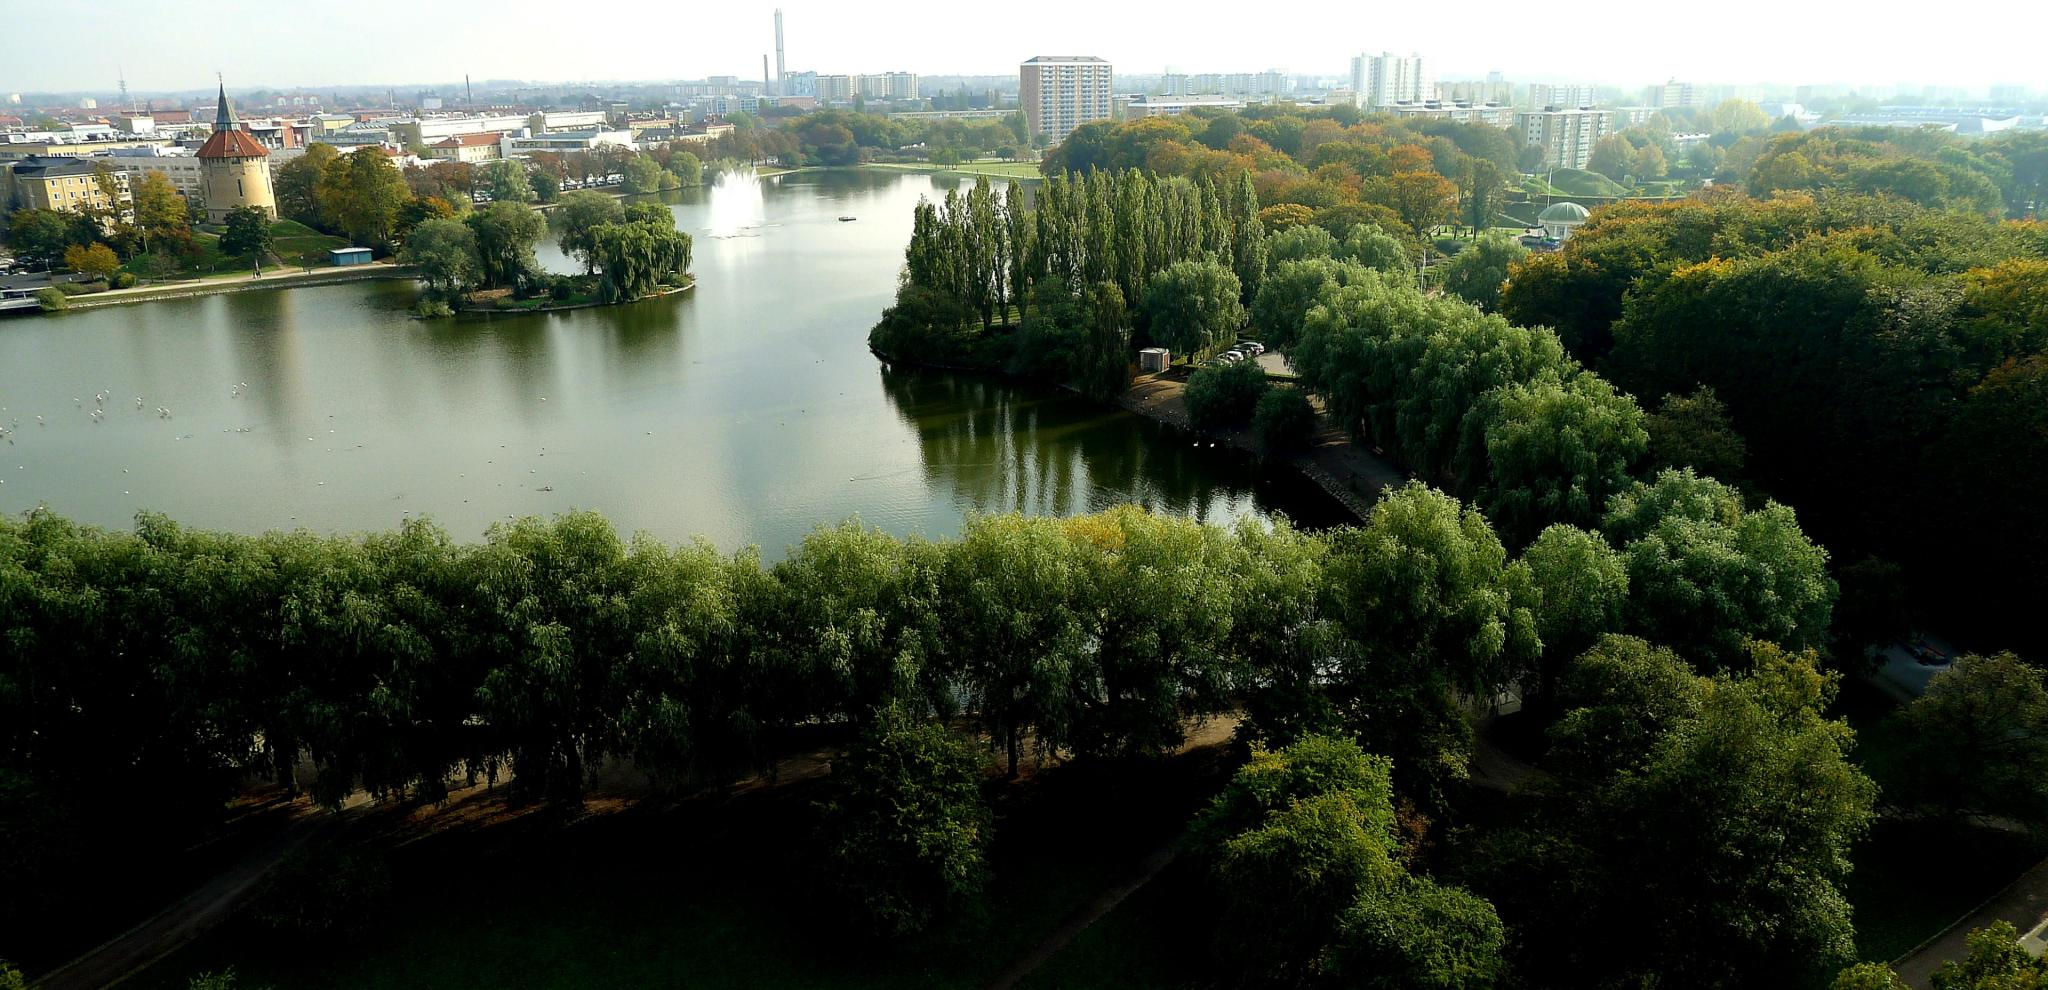 Birdview over Pildammsparken